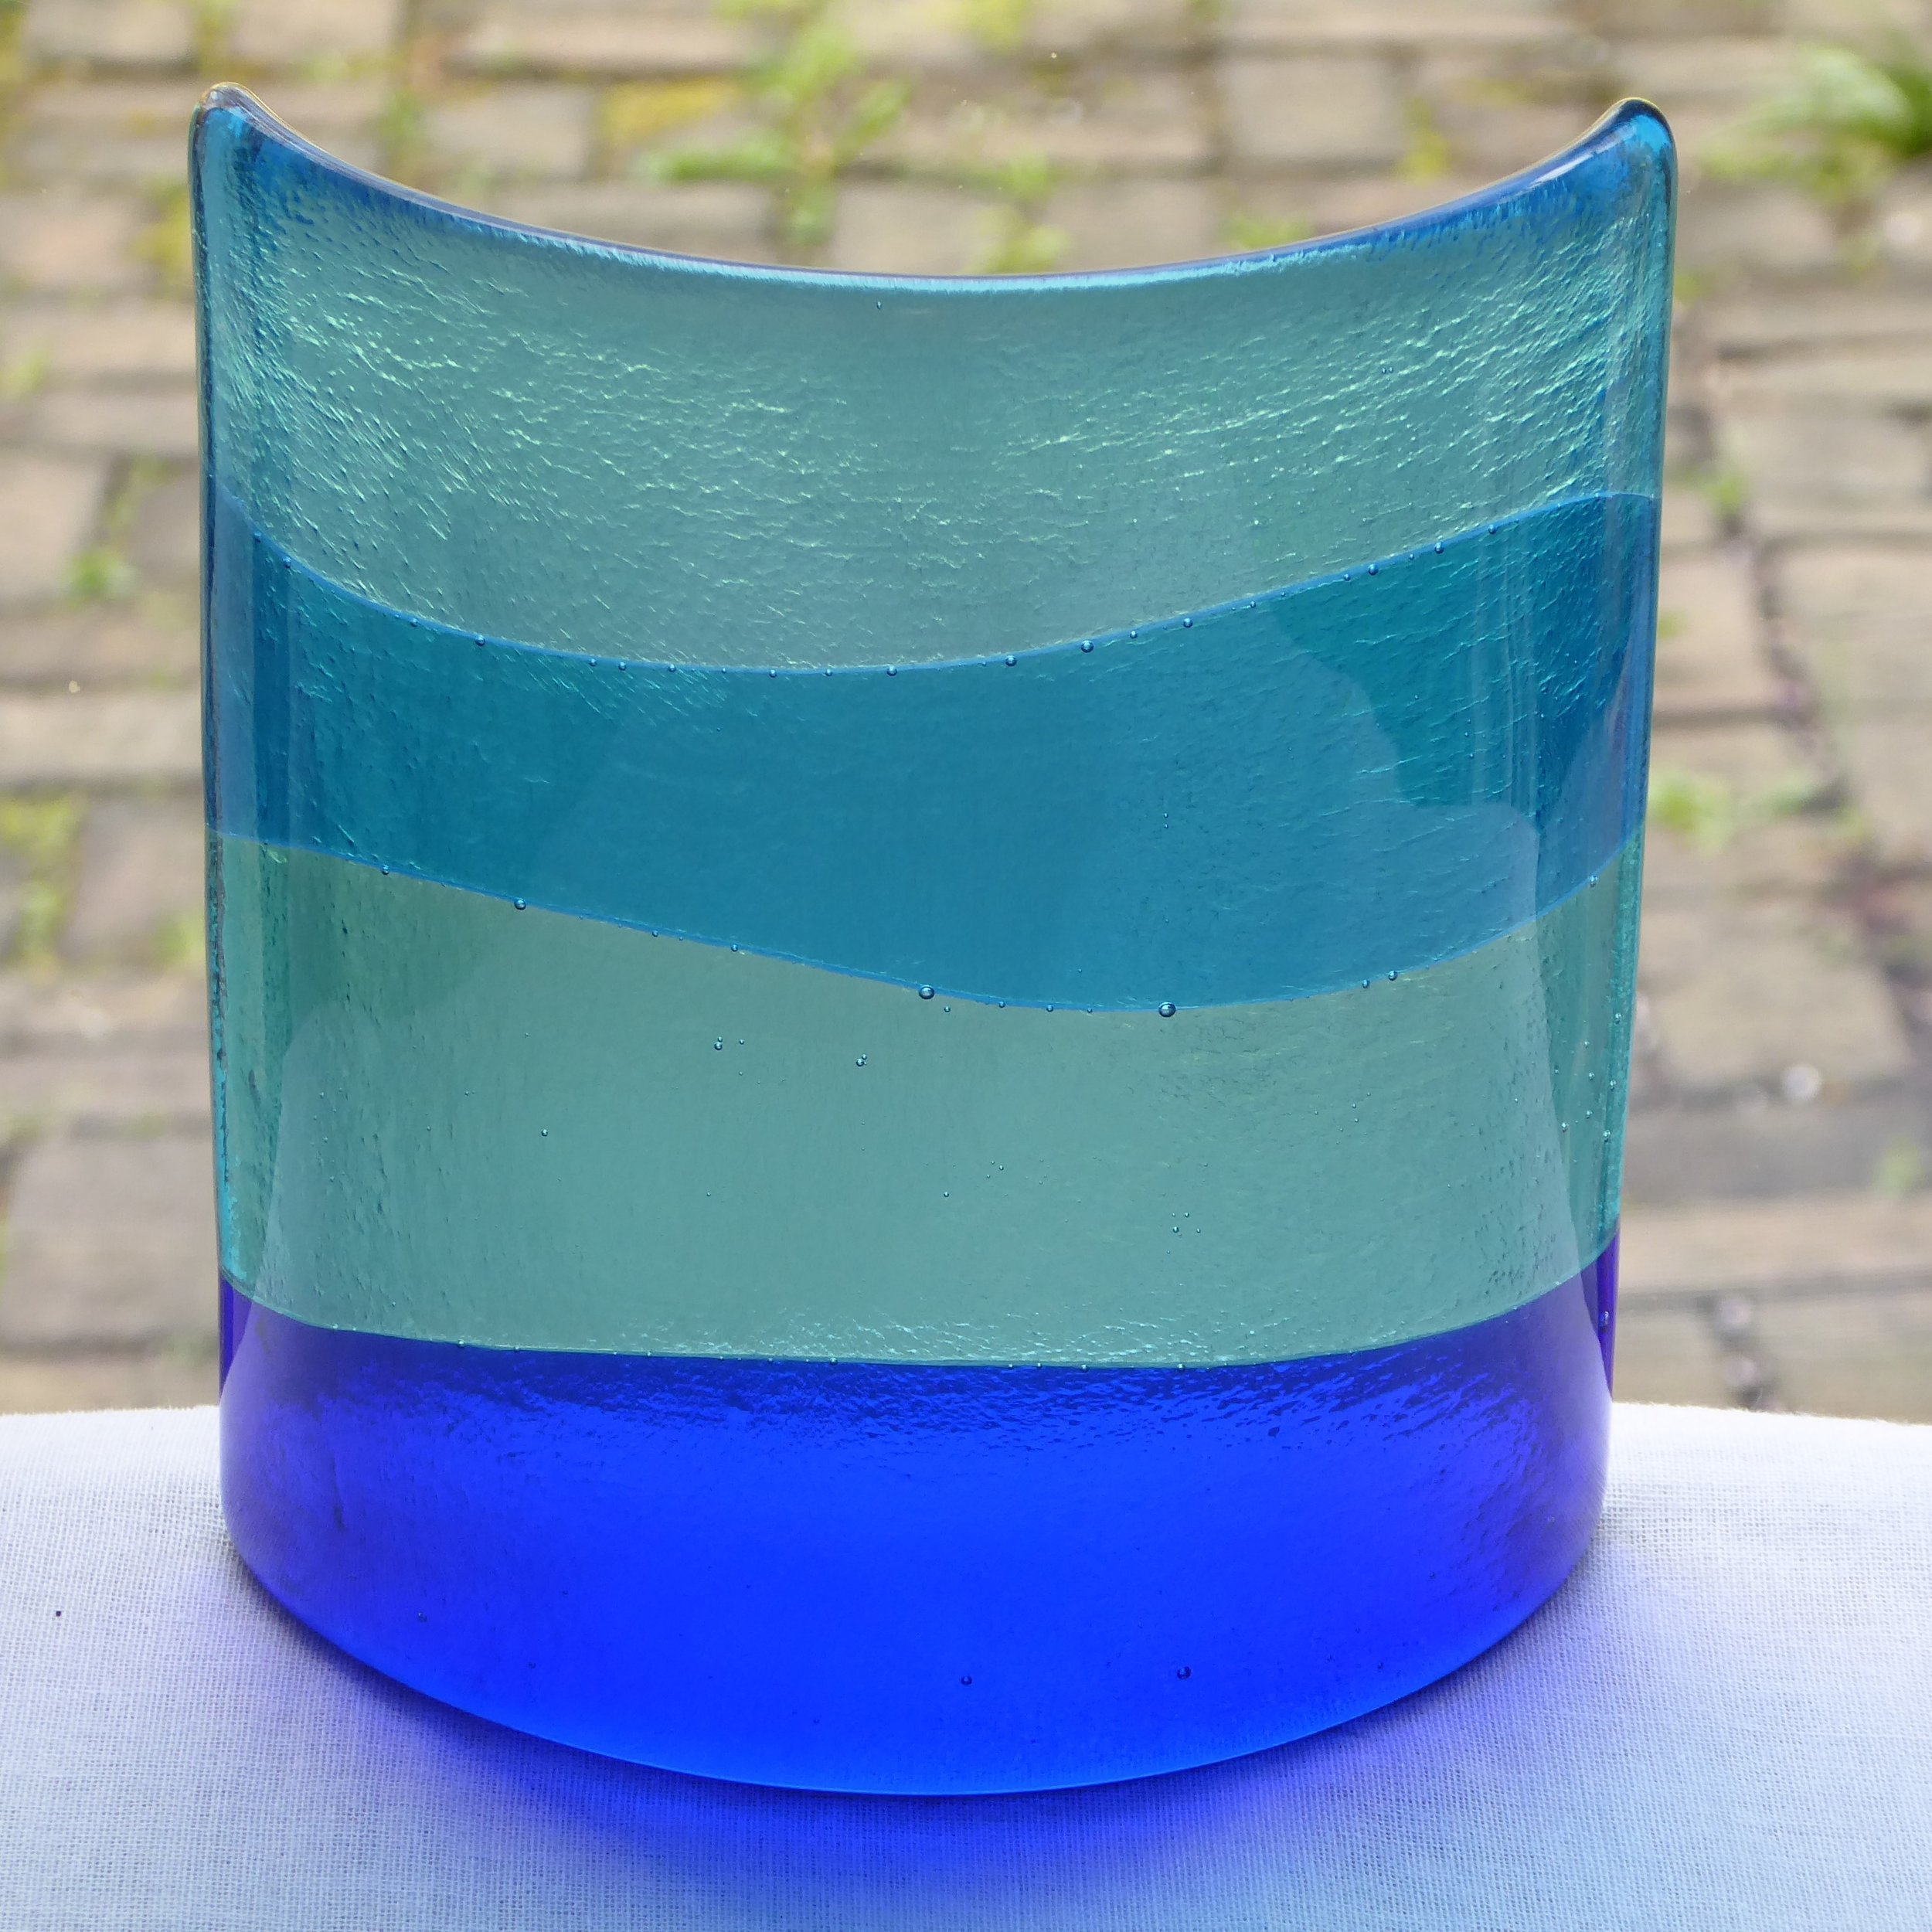 Blue window/candle lamp